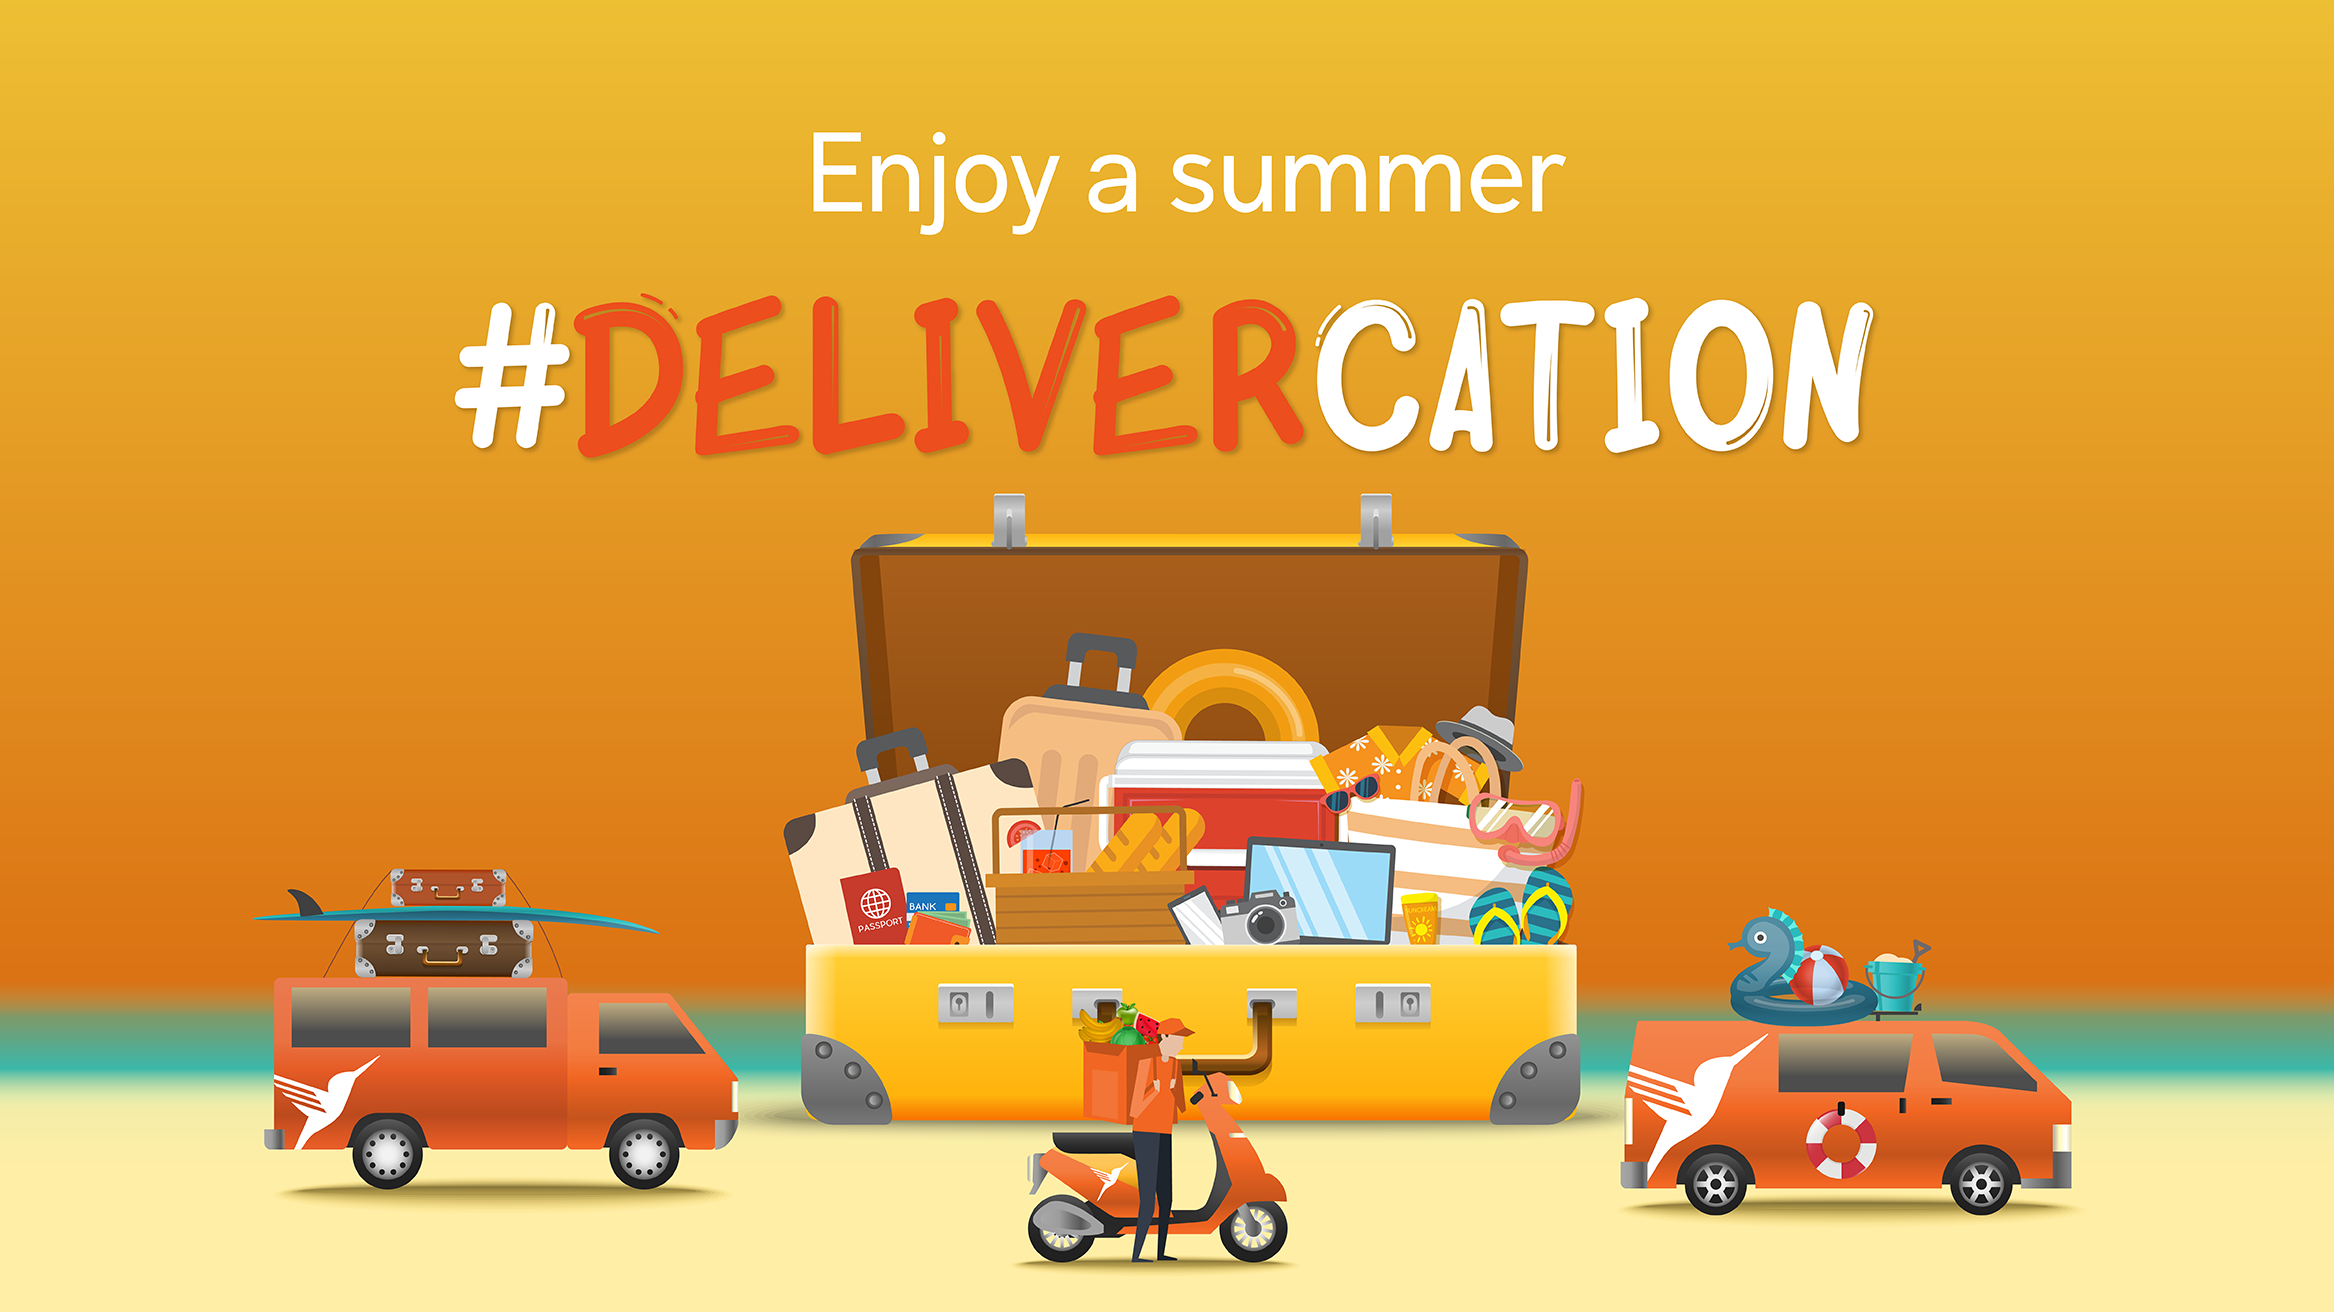 What's Delivercation & How to Enjoy One!